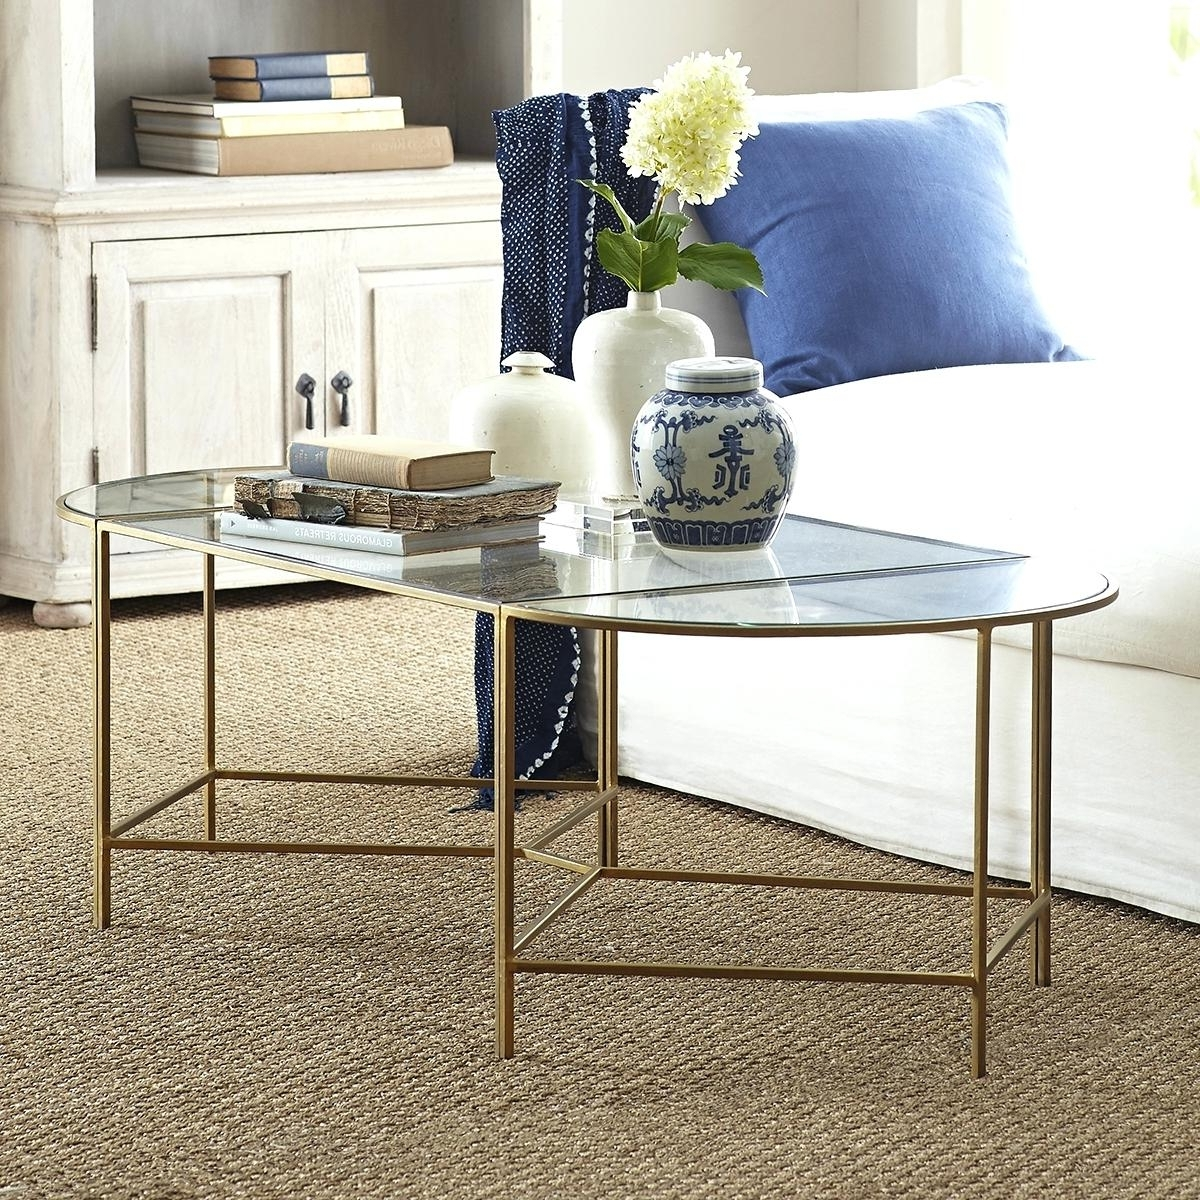 Well Known Expressionist Coffee Tables Inside Floor Coffee Table Floor Level Coffee Table – Shareforcures (View 3 of 20)